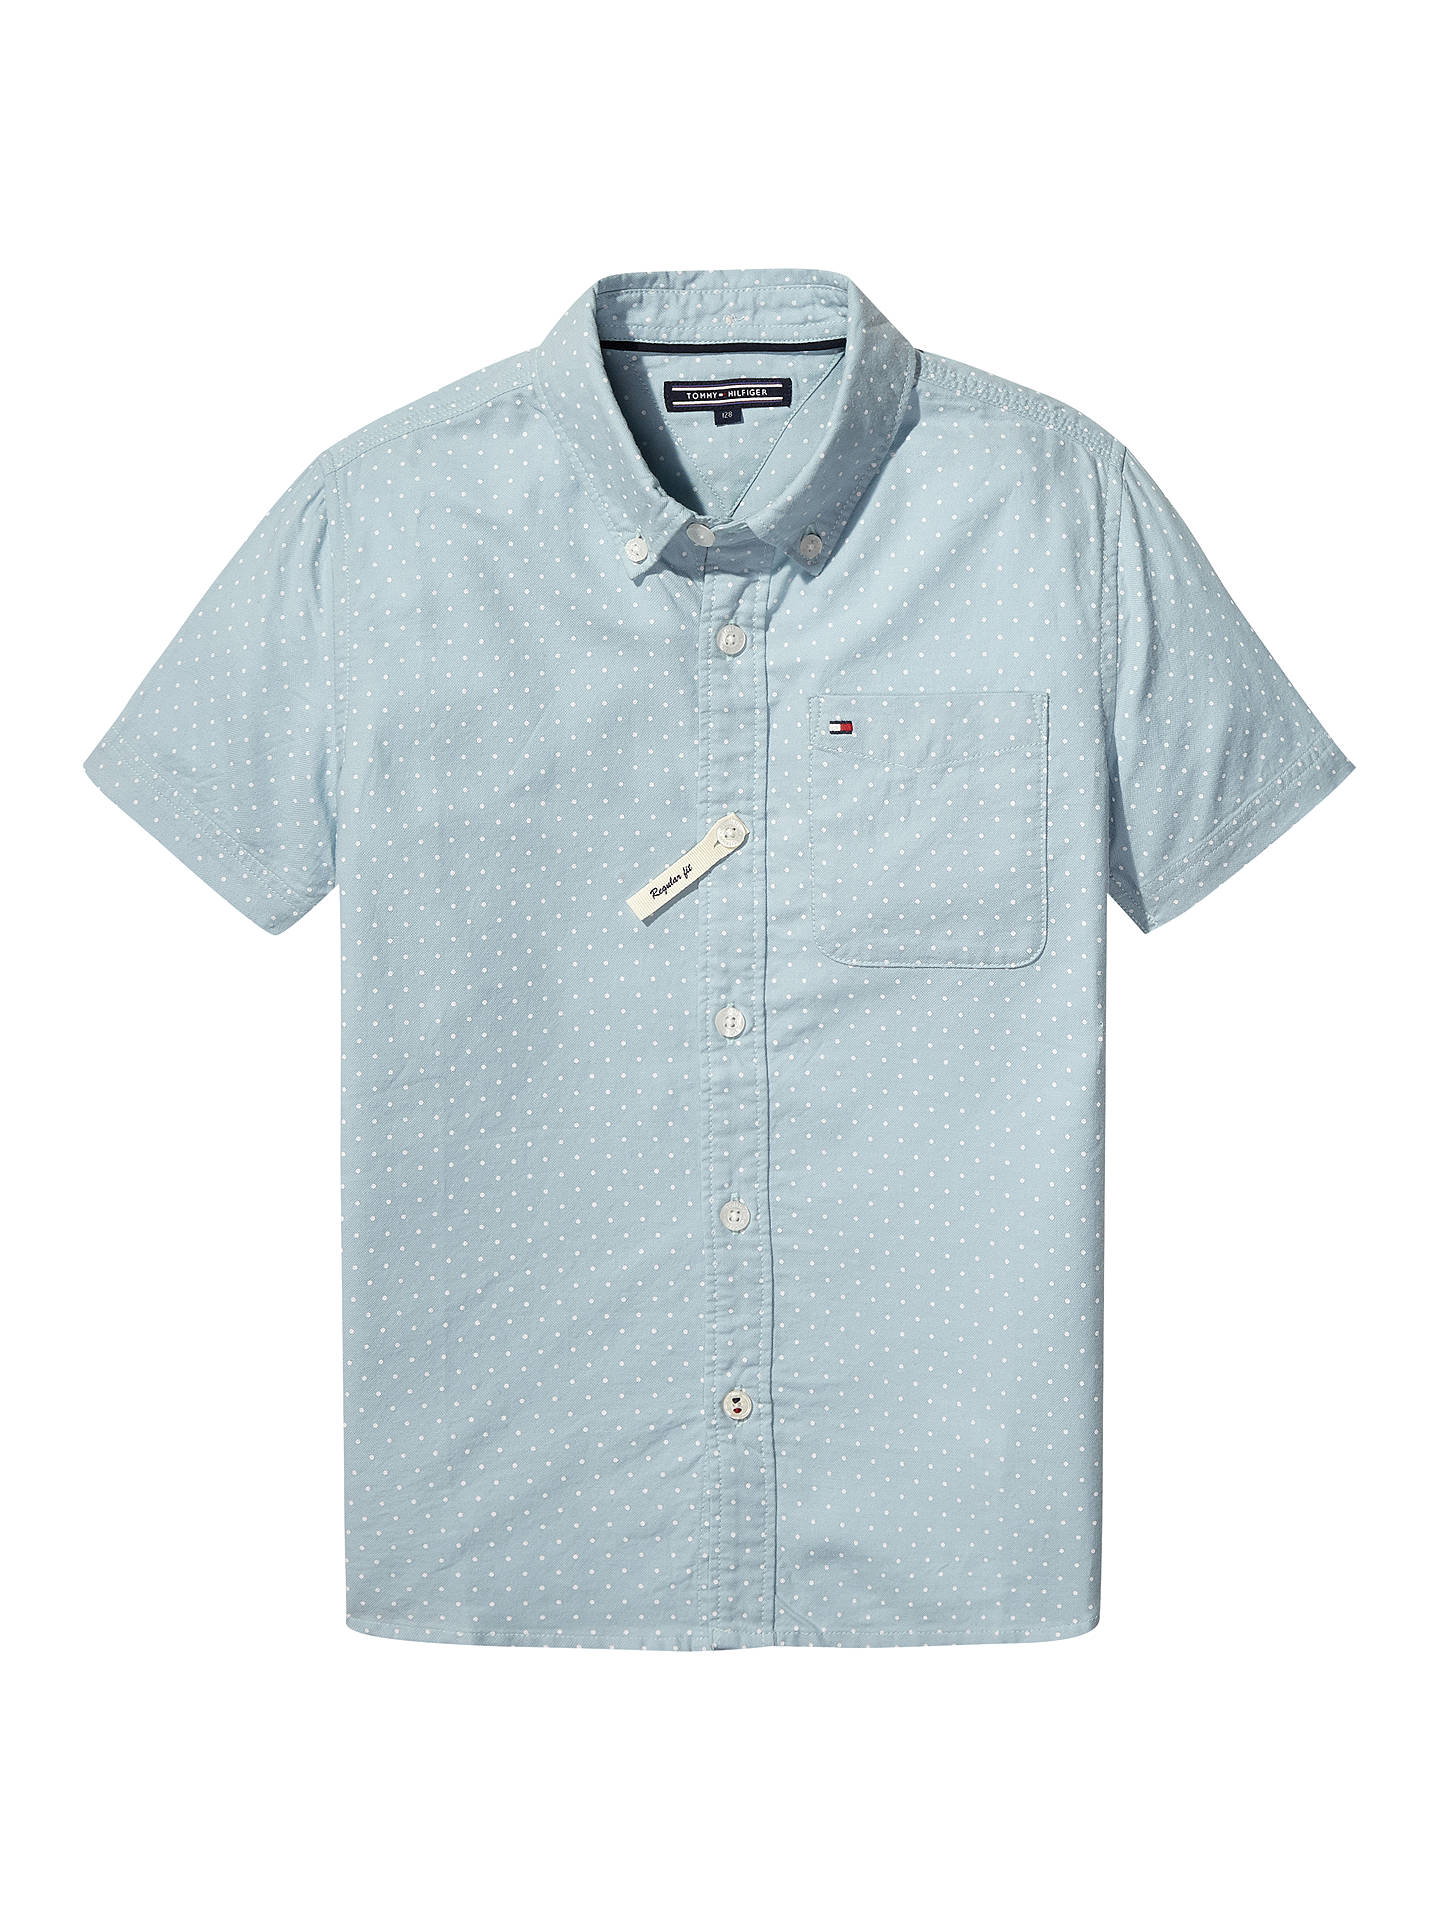 df493659aa17 Buy Tommy Hilfiger Boys  Dot Print Short Sleeve Shirt